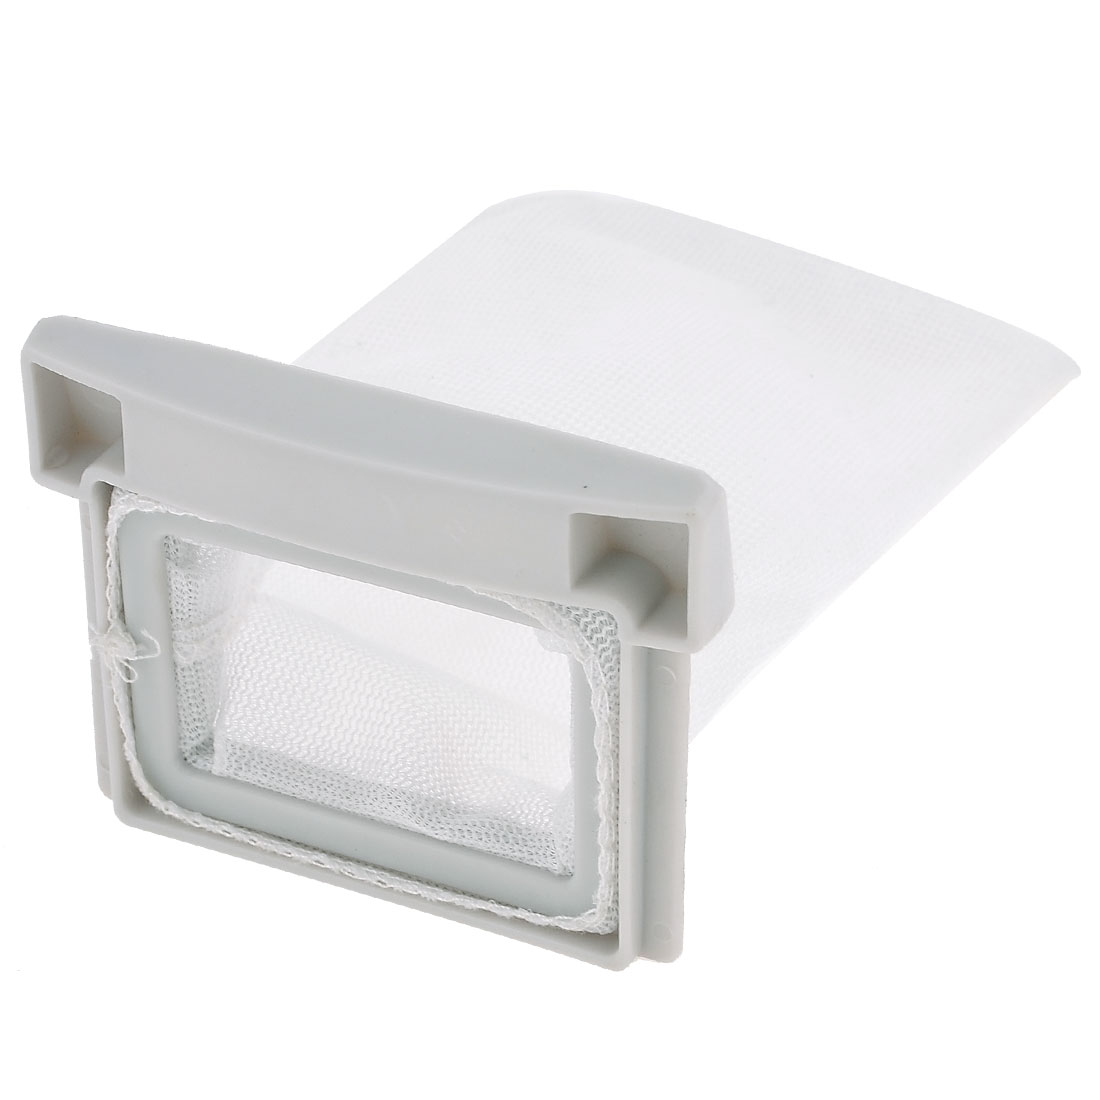 Washing Machine White Plastic Nylon Filter 10.5cm x 7cm Meshy Bag